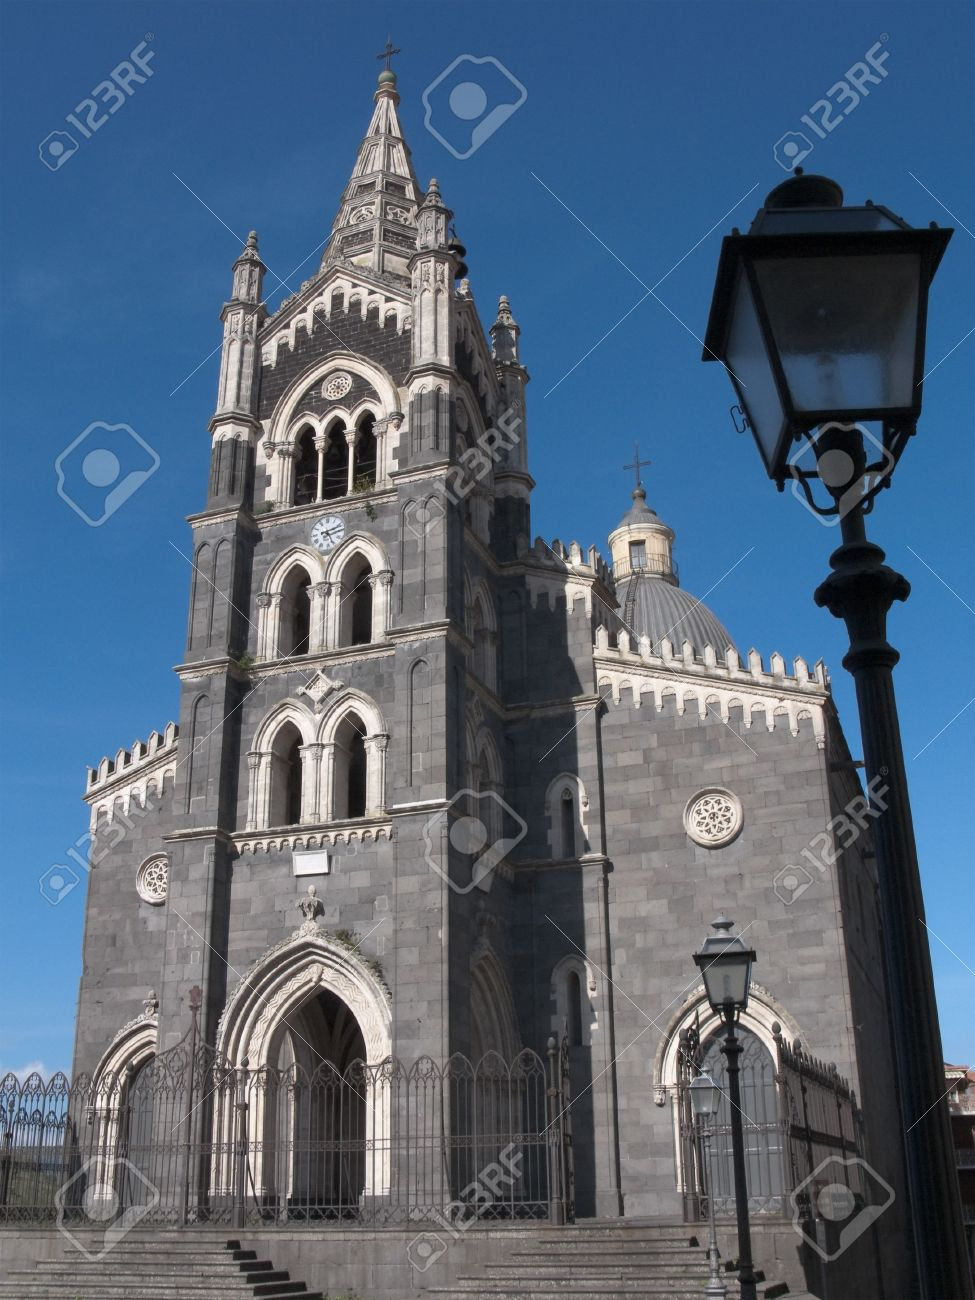 Gothic Cathedral In Black And White Stone Randazzo Sicily Stock Photo